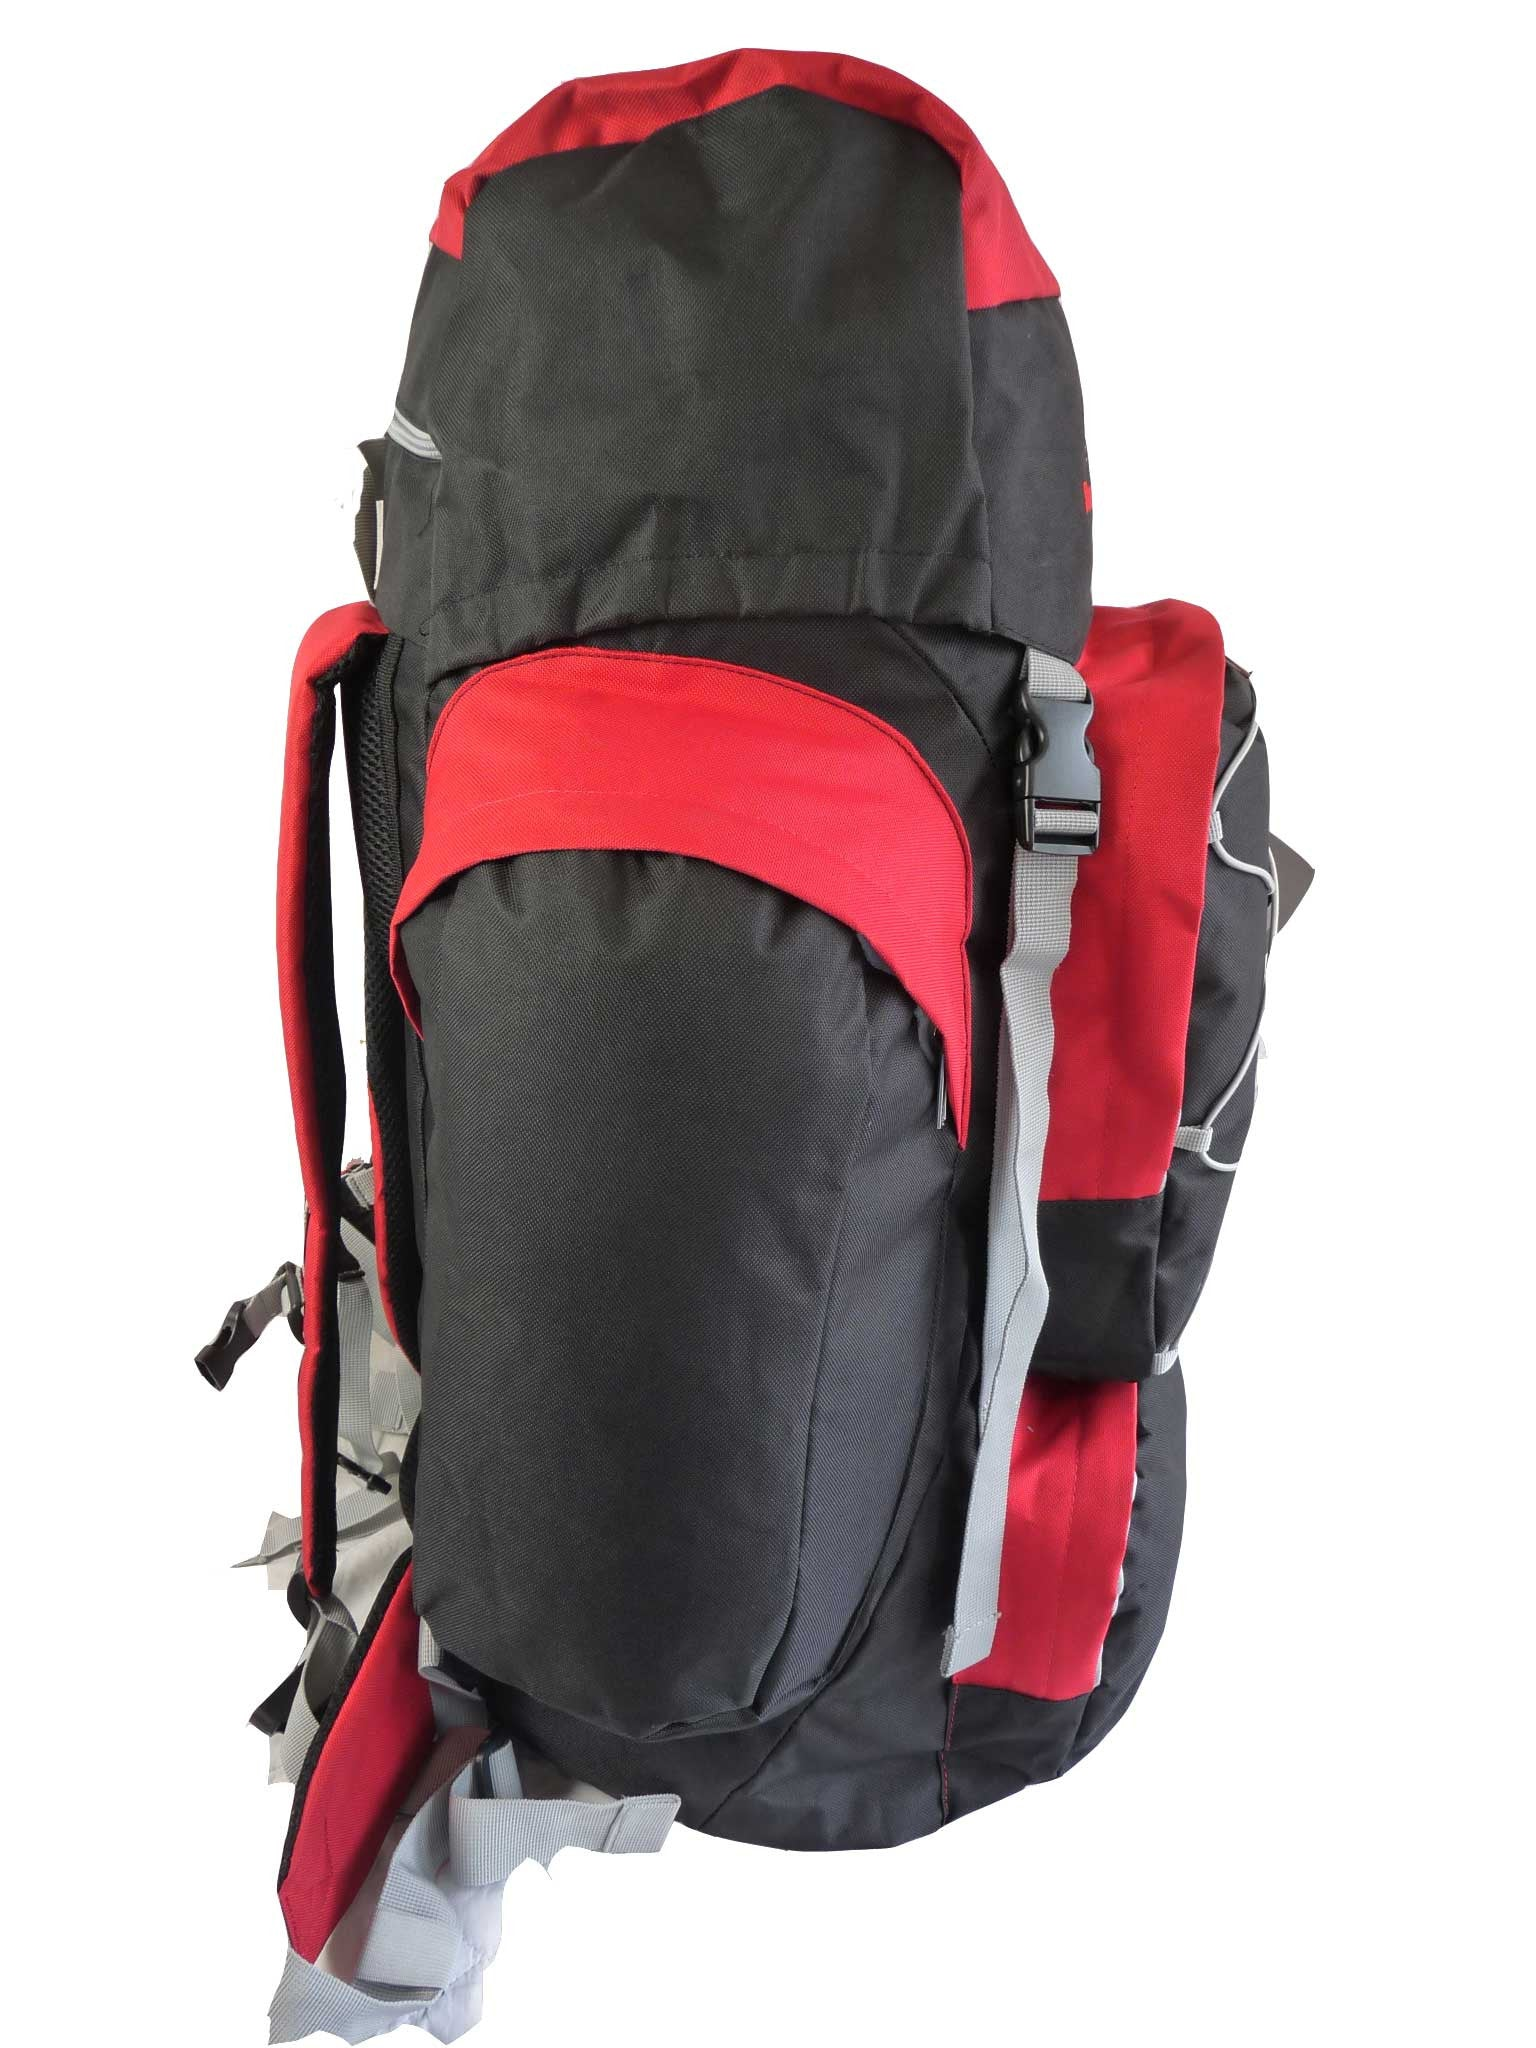 80 100 125 litre backpack red end view